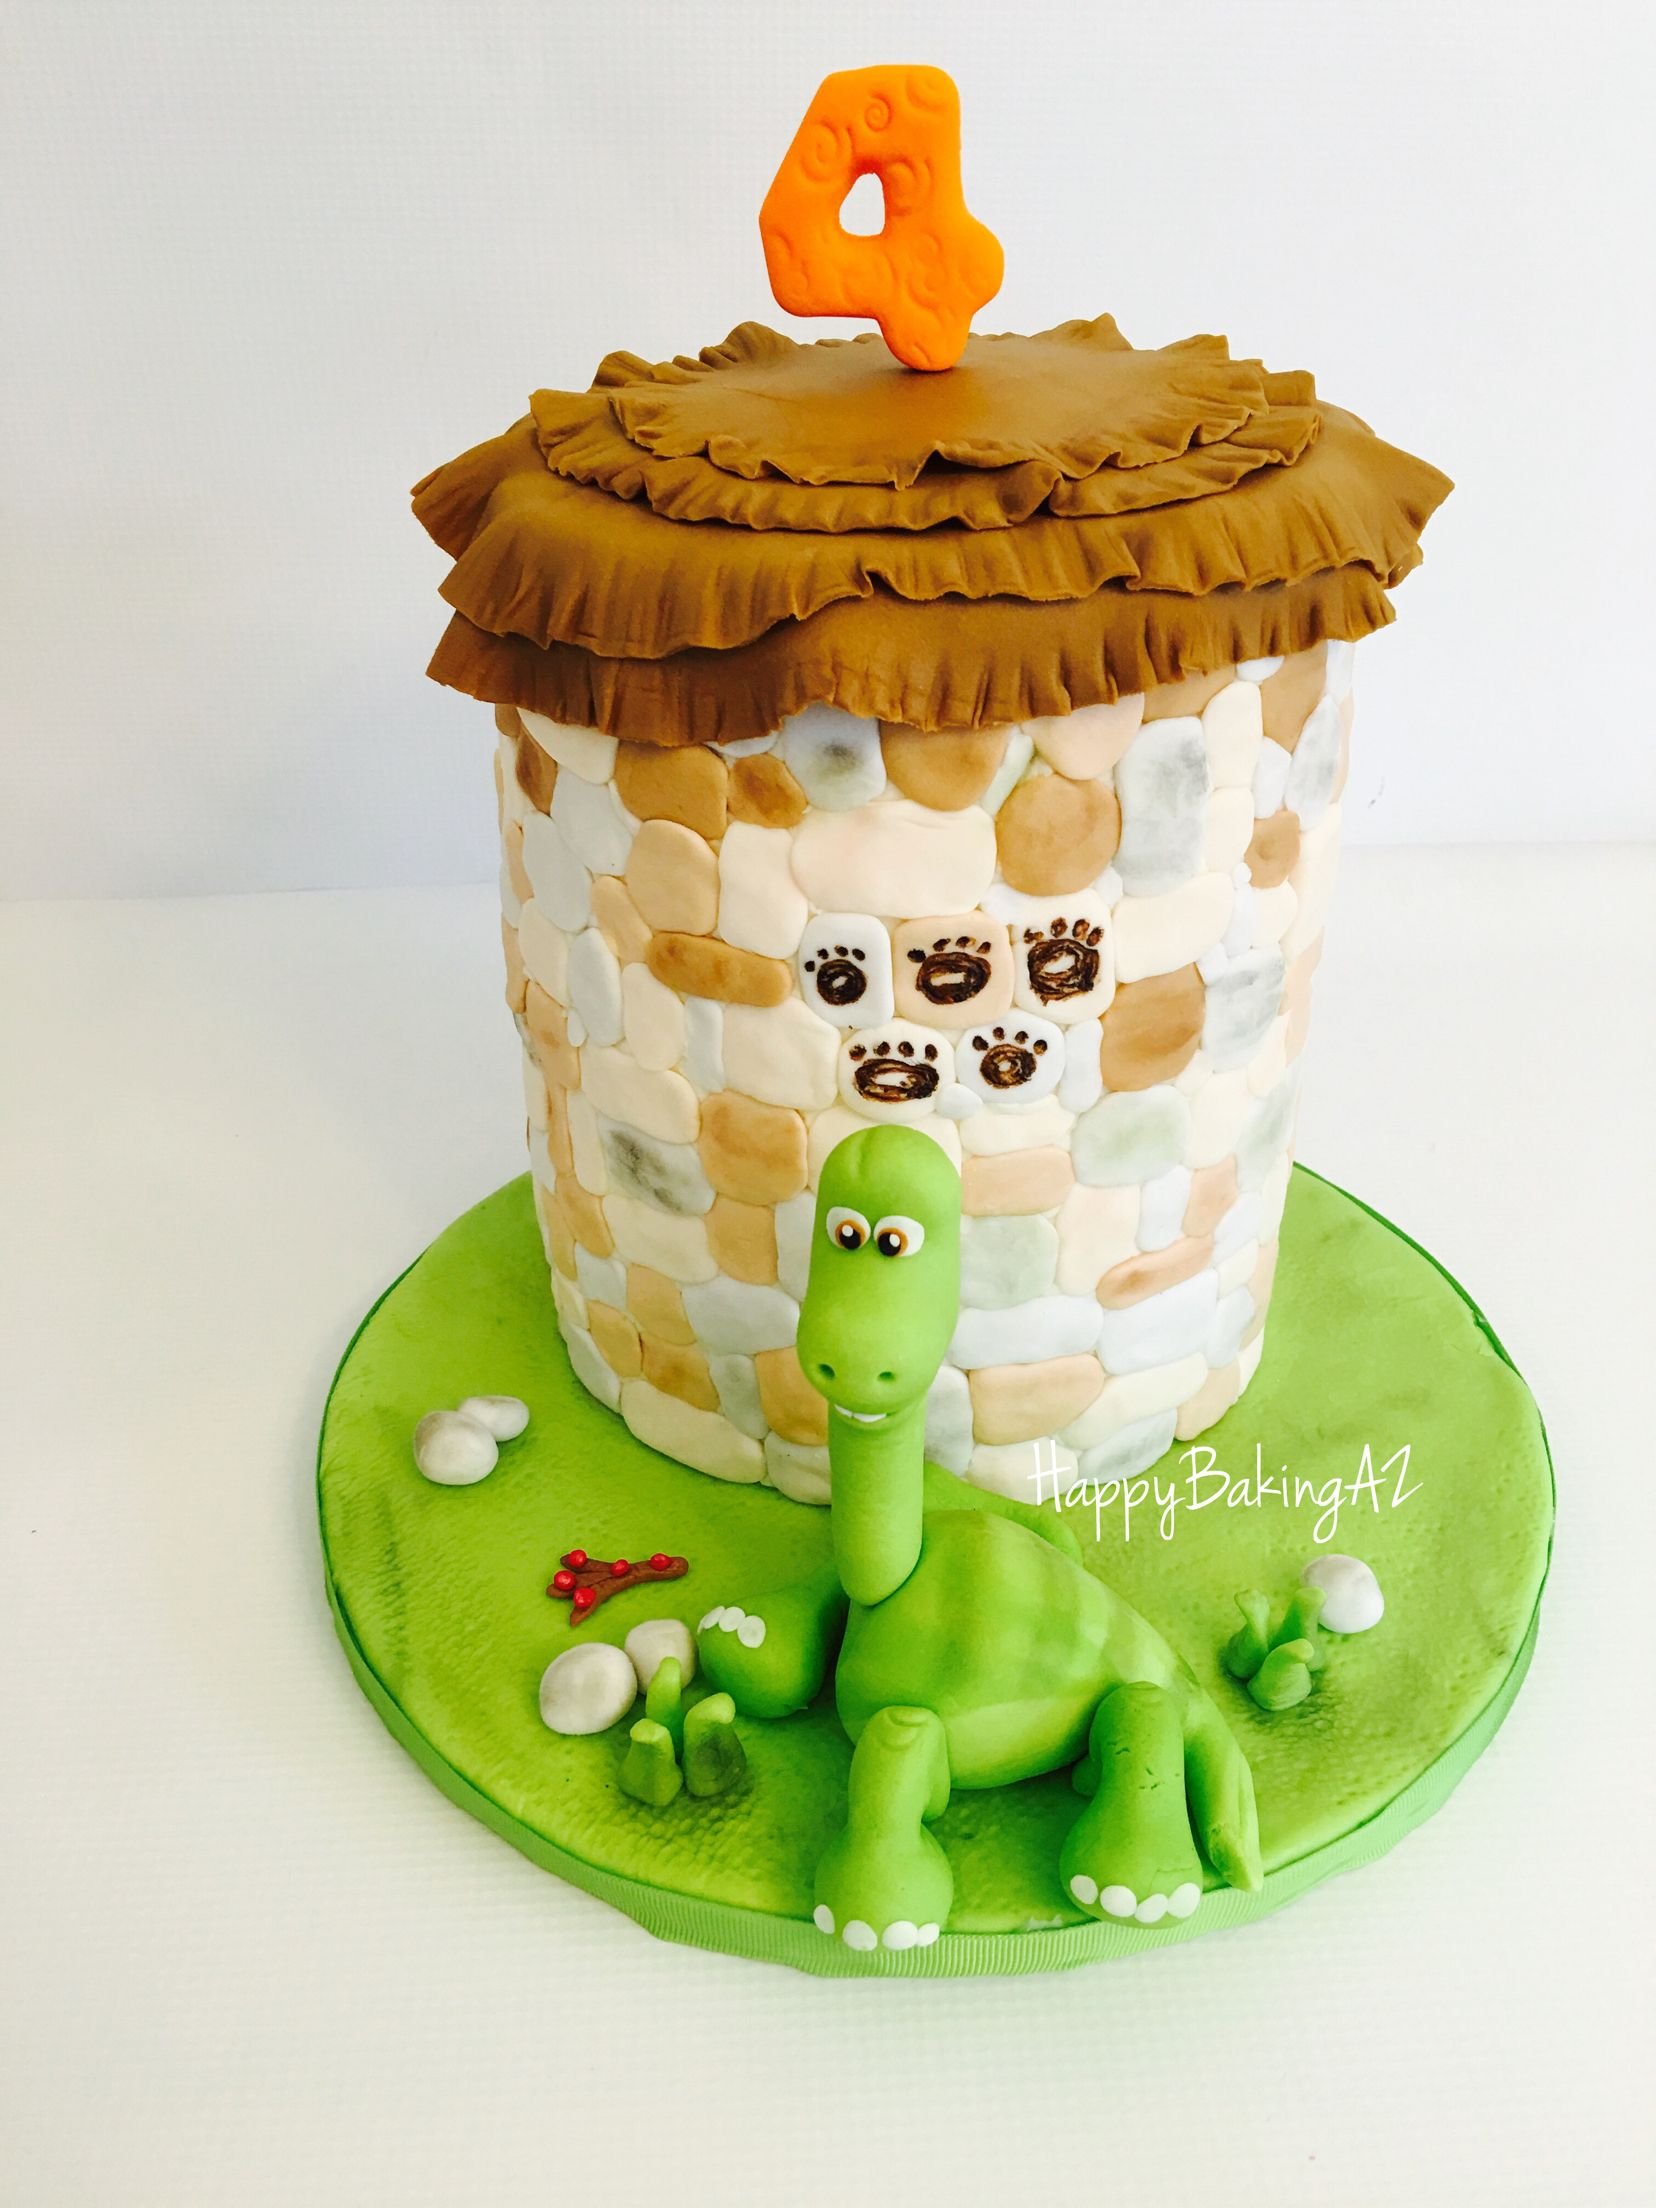 The good dinosaur cake Arlo is handmade and all edible Birthday